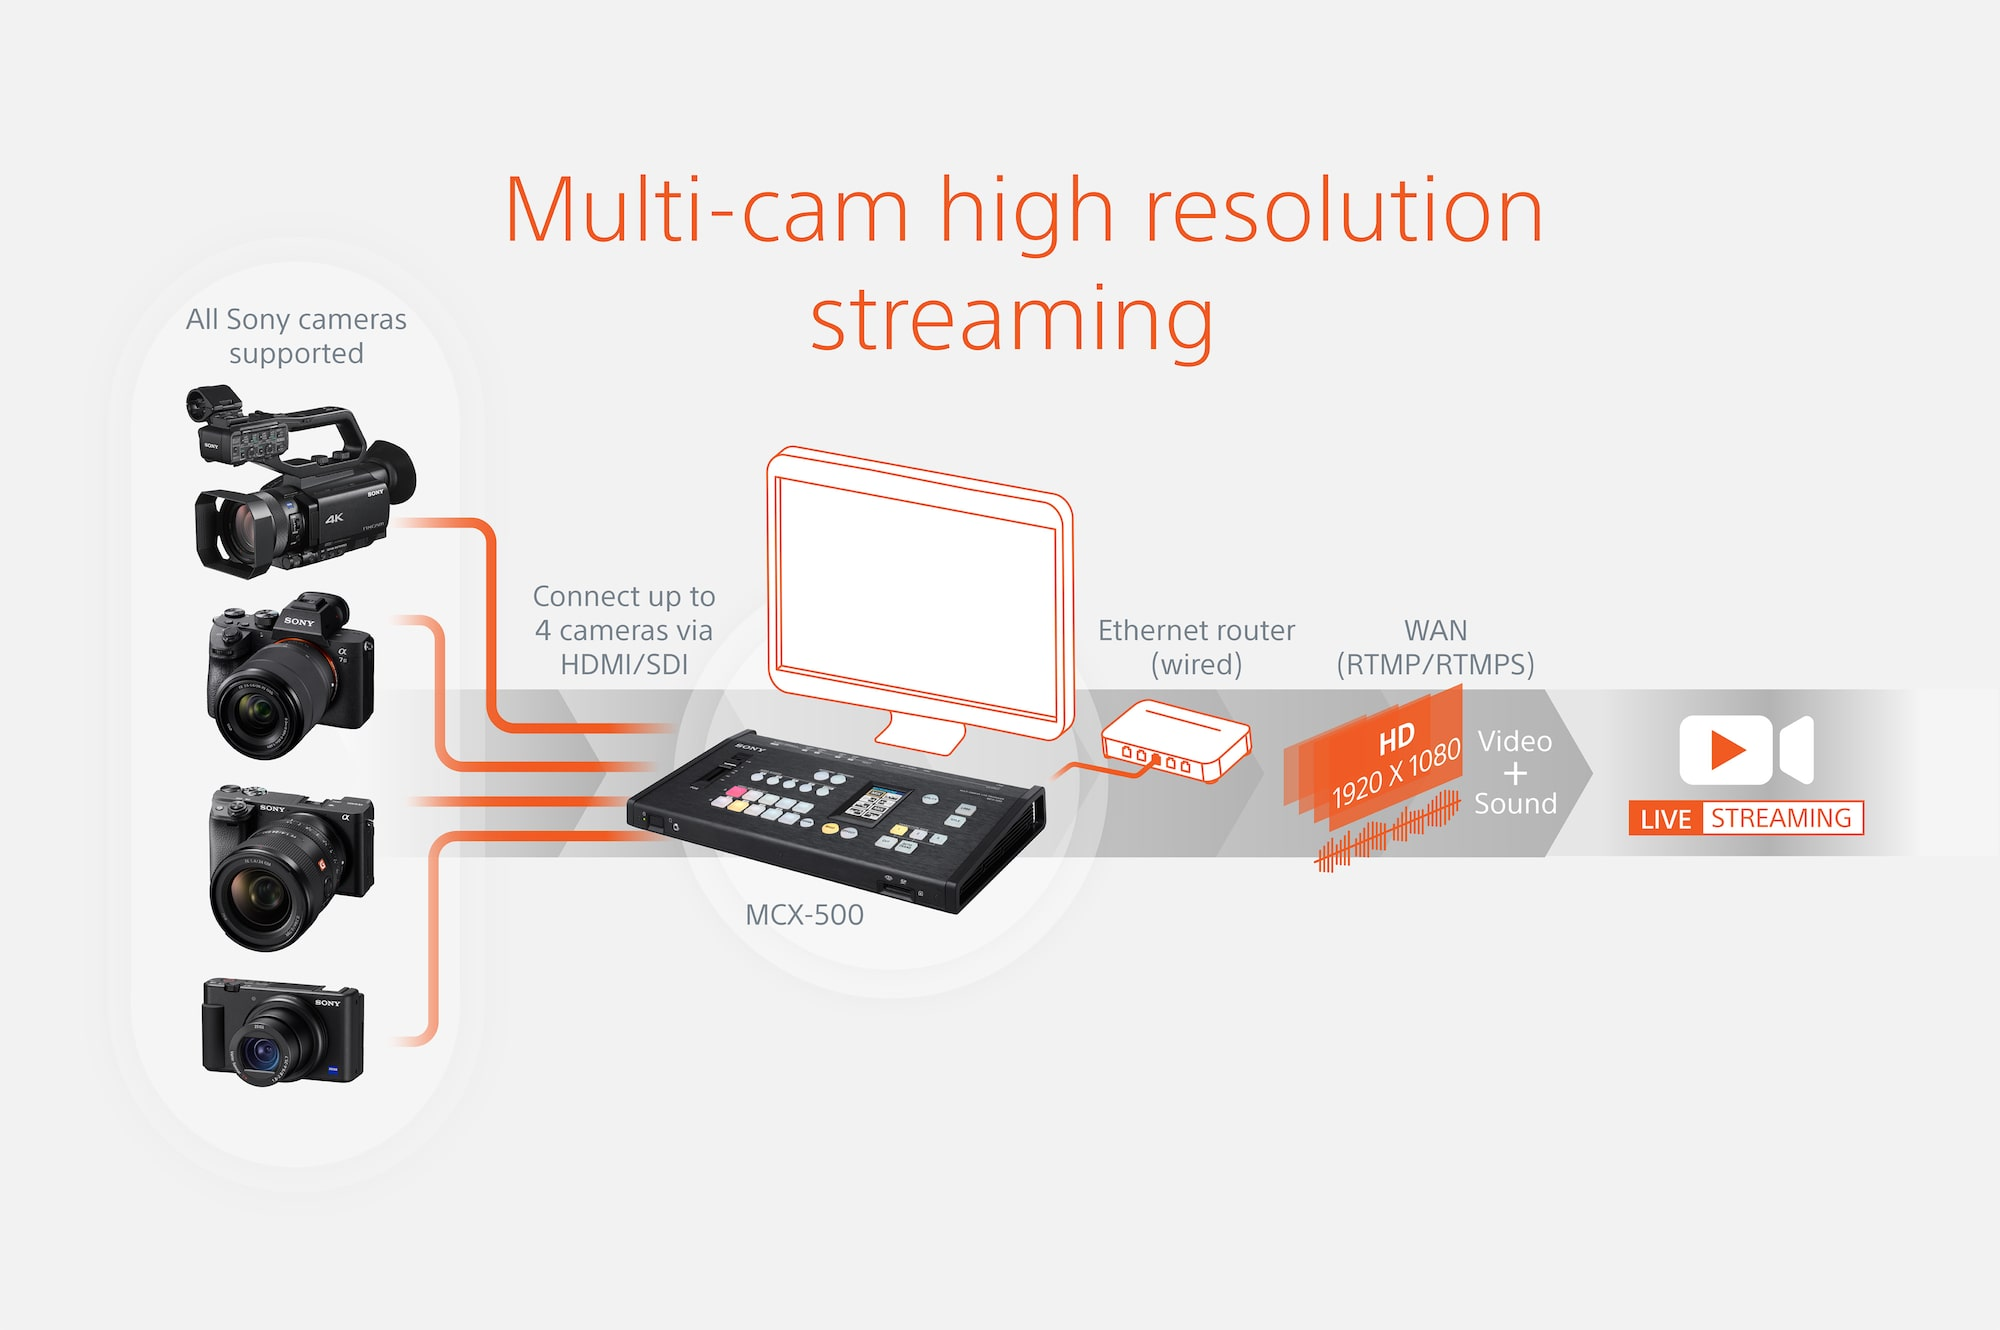 Studio quality, multi-angle experience with up to 4 cameras*